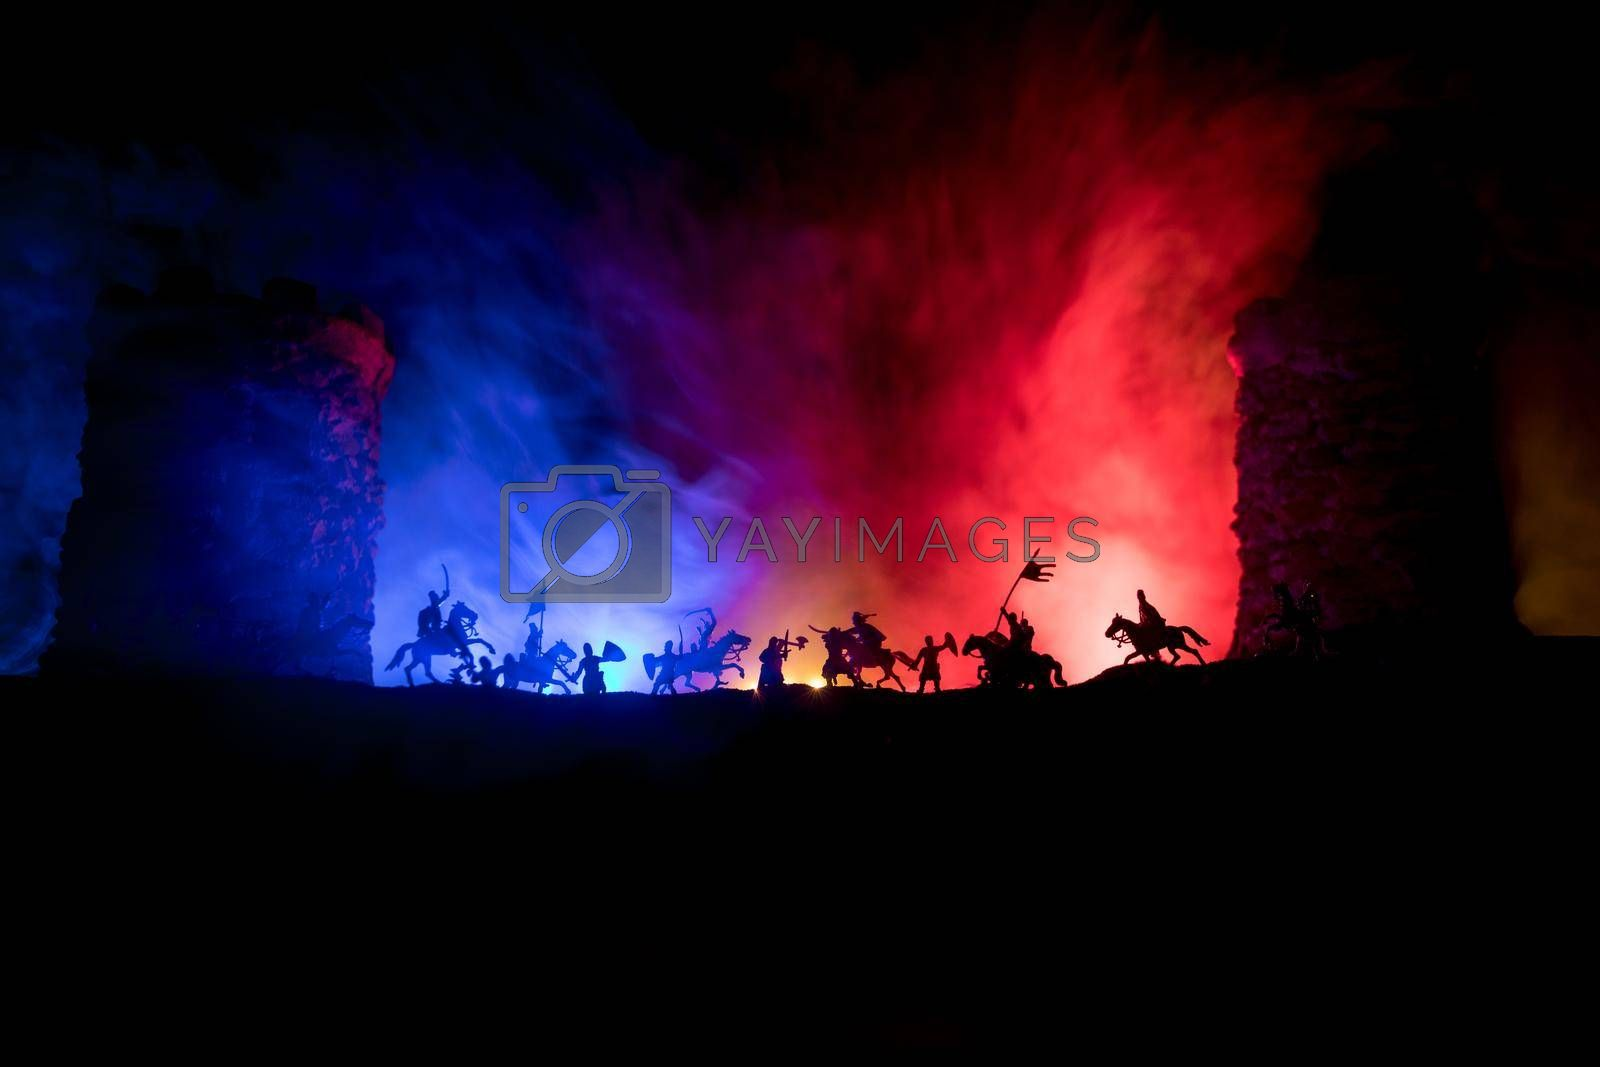 Medieval battle scene. Silhouettes of figures as separate objects, fight between warriors at night. Creative artwork decoration. Foggy background. by Zeferli